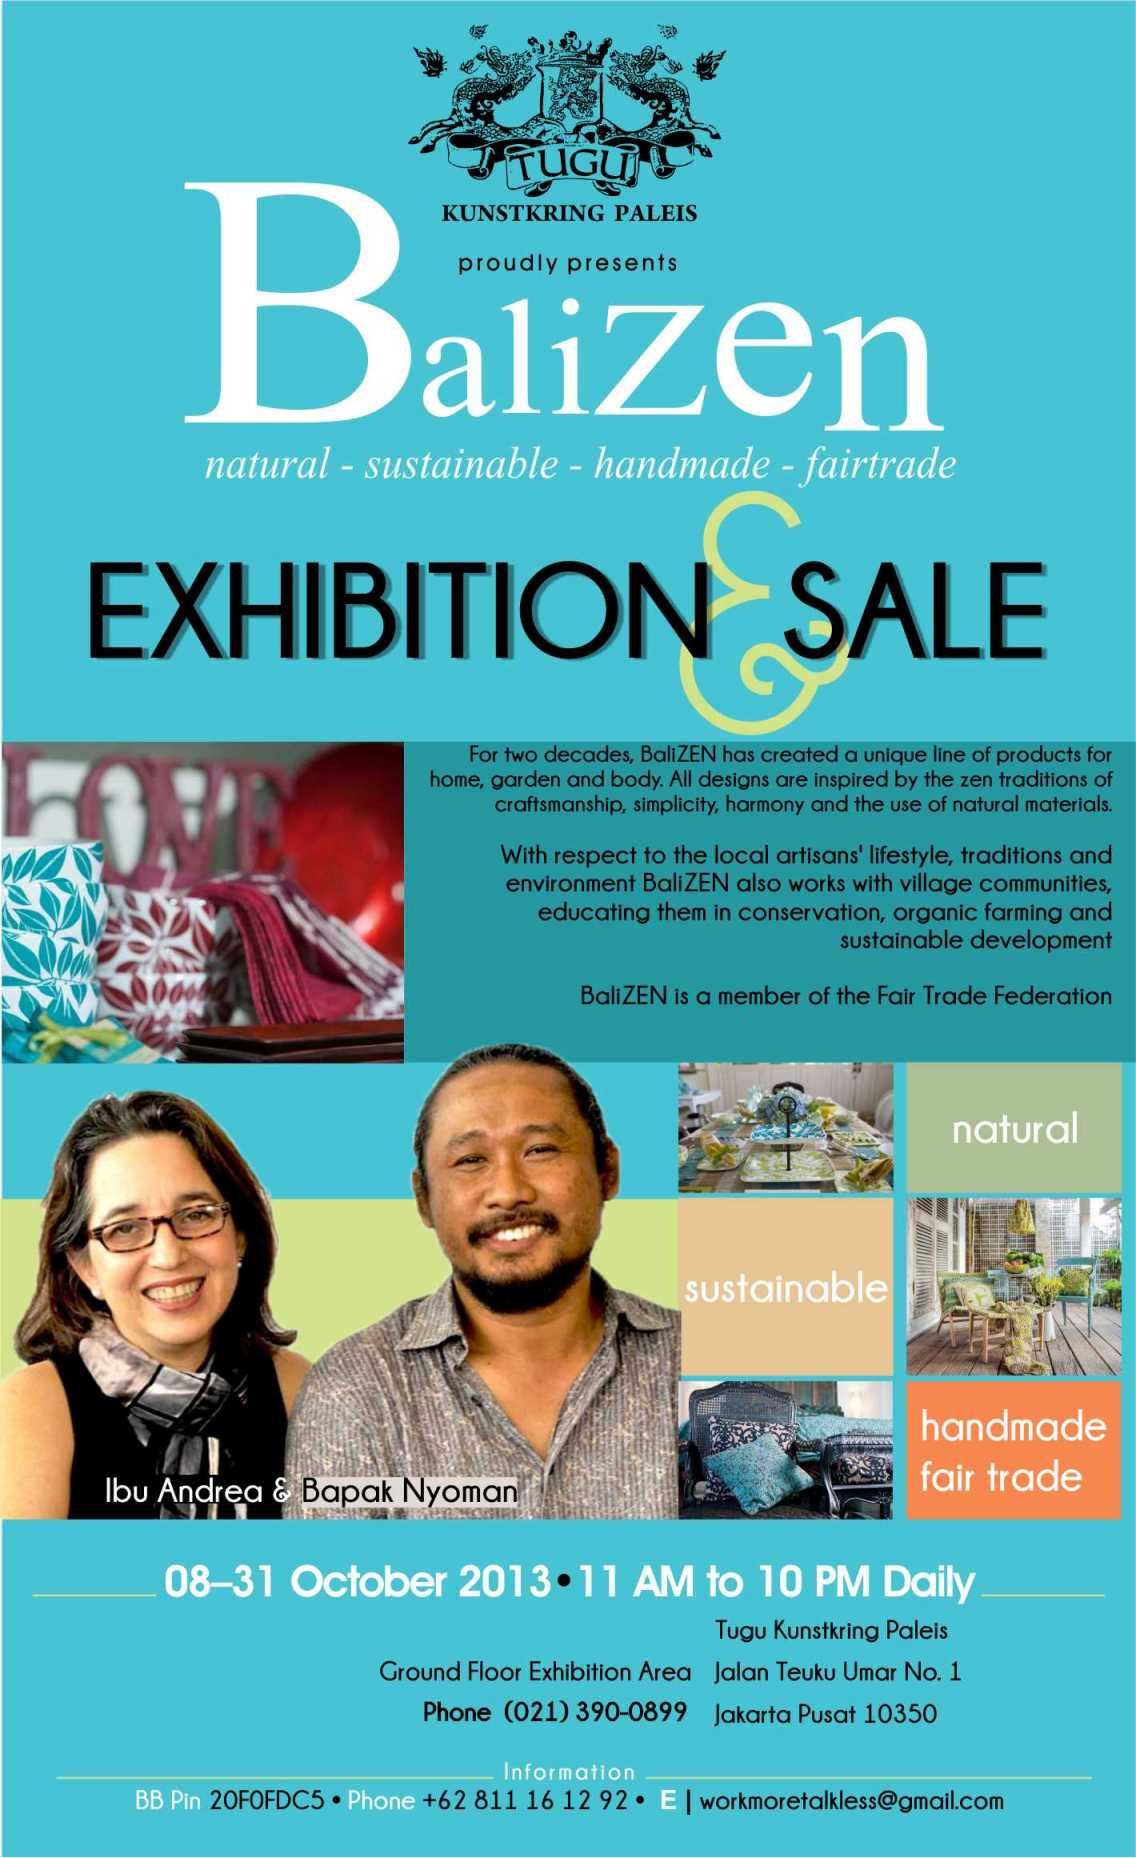 balizen exhibition and sale 08-31 october 2013 at tugu kunstkring paleis